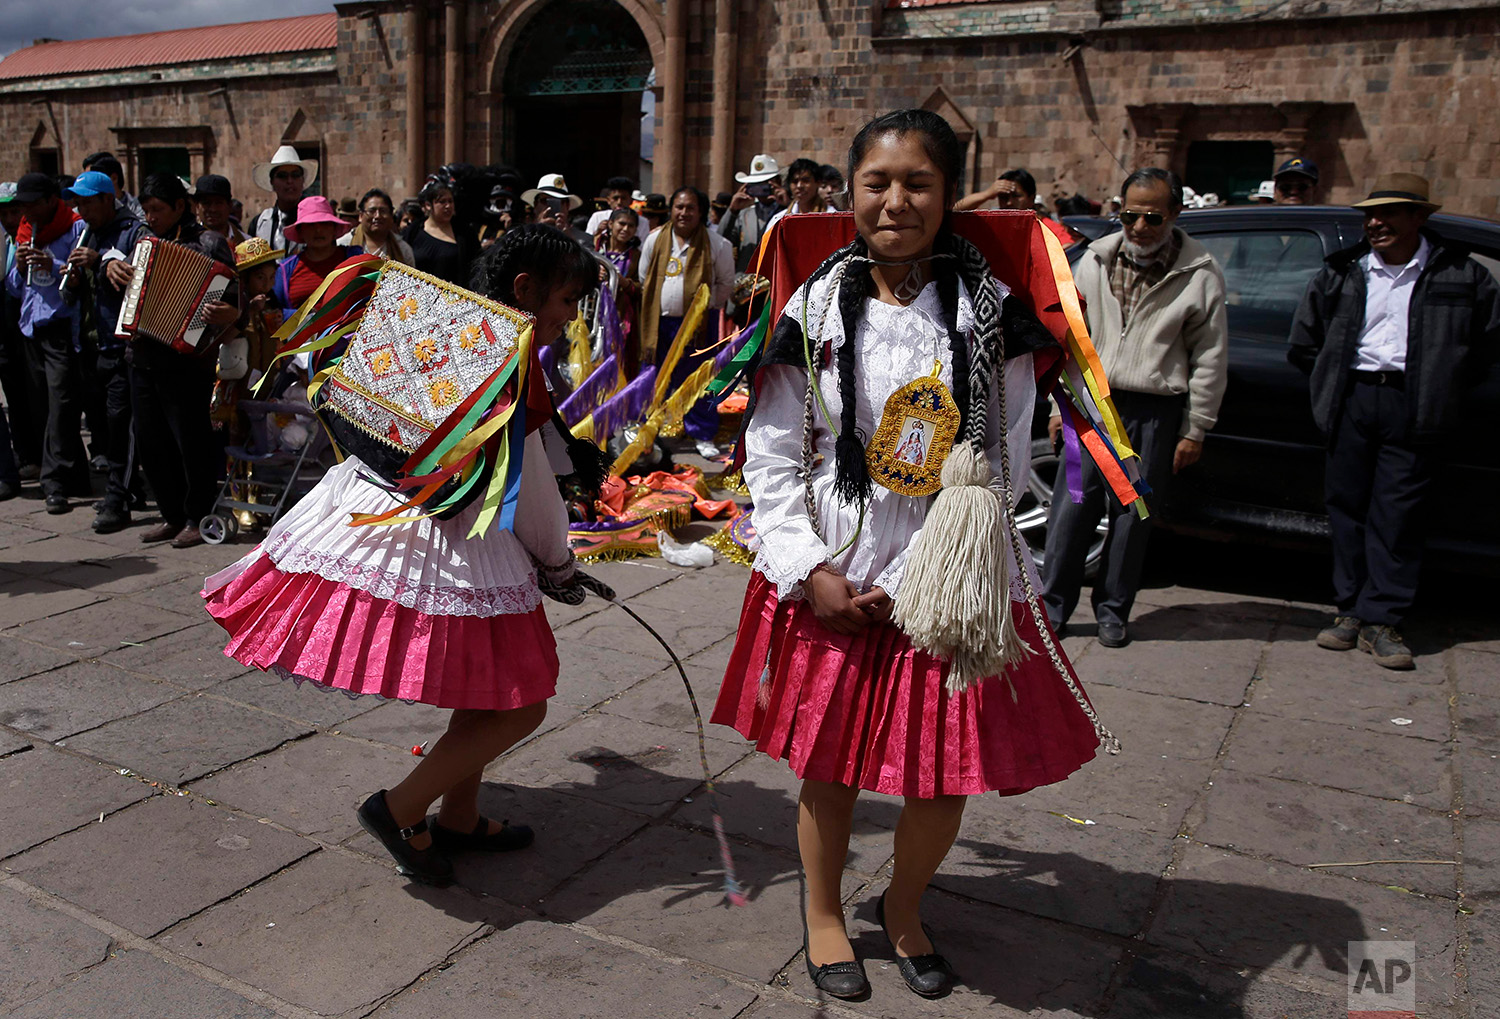 """A dancer winces in pain as she is whipped by a fellow dancer in an adaptation of the Inca warrior dance known as """"Kachampa"""", during celebrations honoring Our Lady of Copacabana, in Cuzco, Peru, Aug. 5, 2018. (AP Photo/Martin Mejia)"""